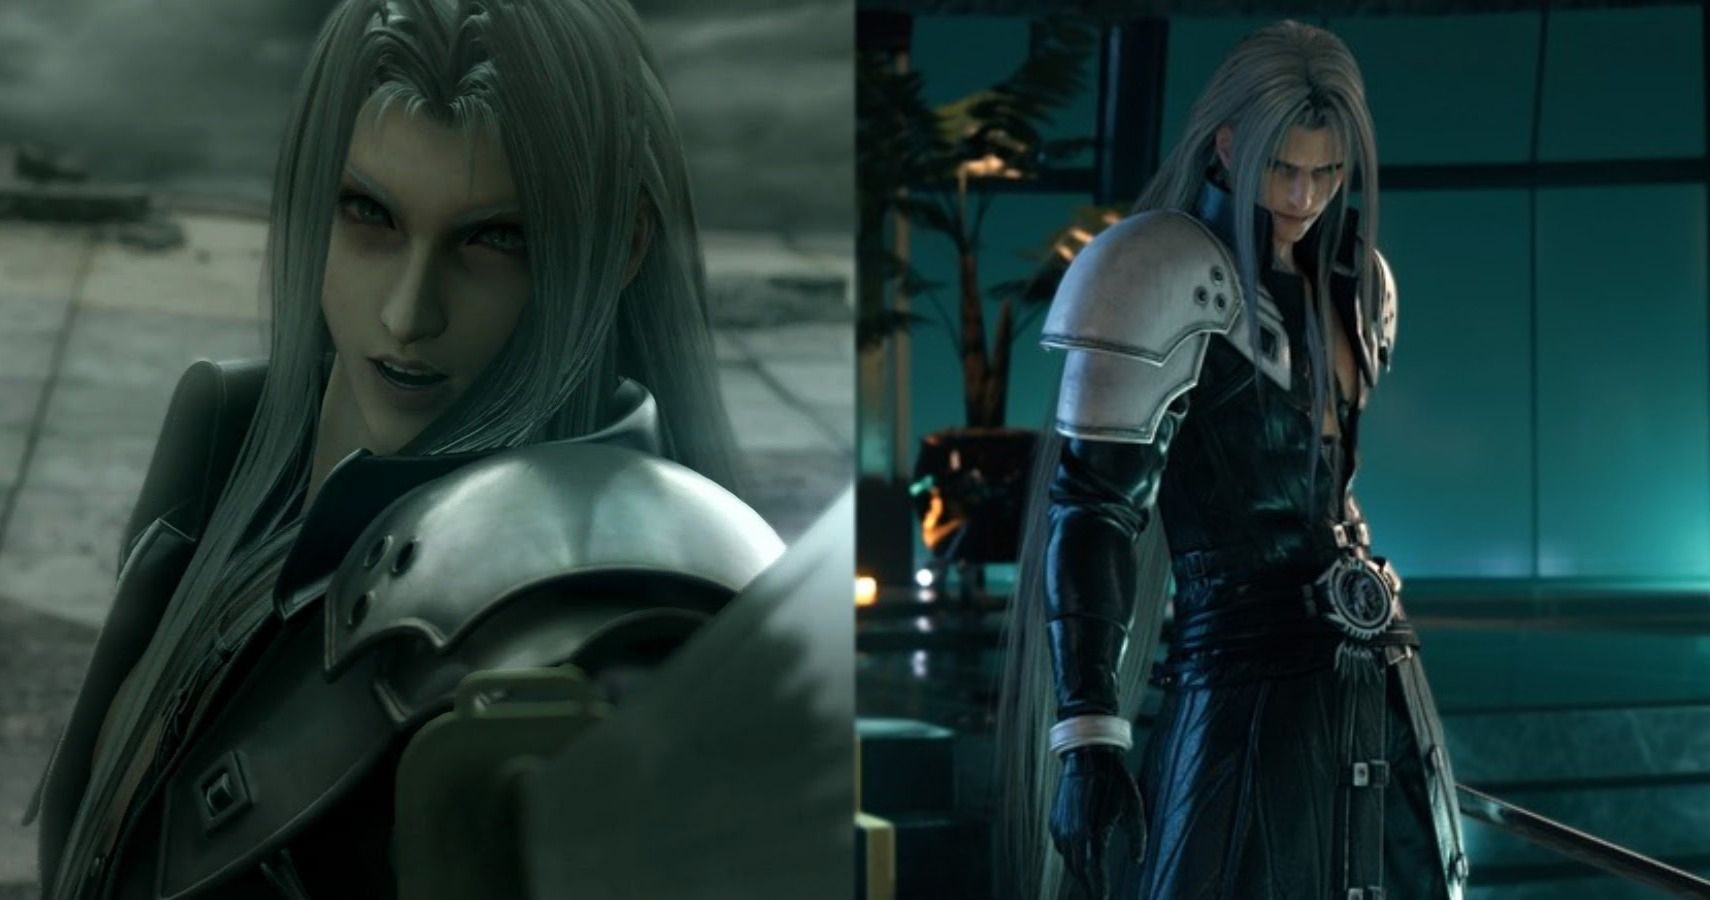 Final Fantasy Vii Remake Theory Did Sephiroth Travel Back In Time